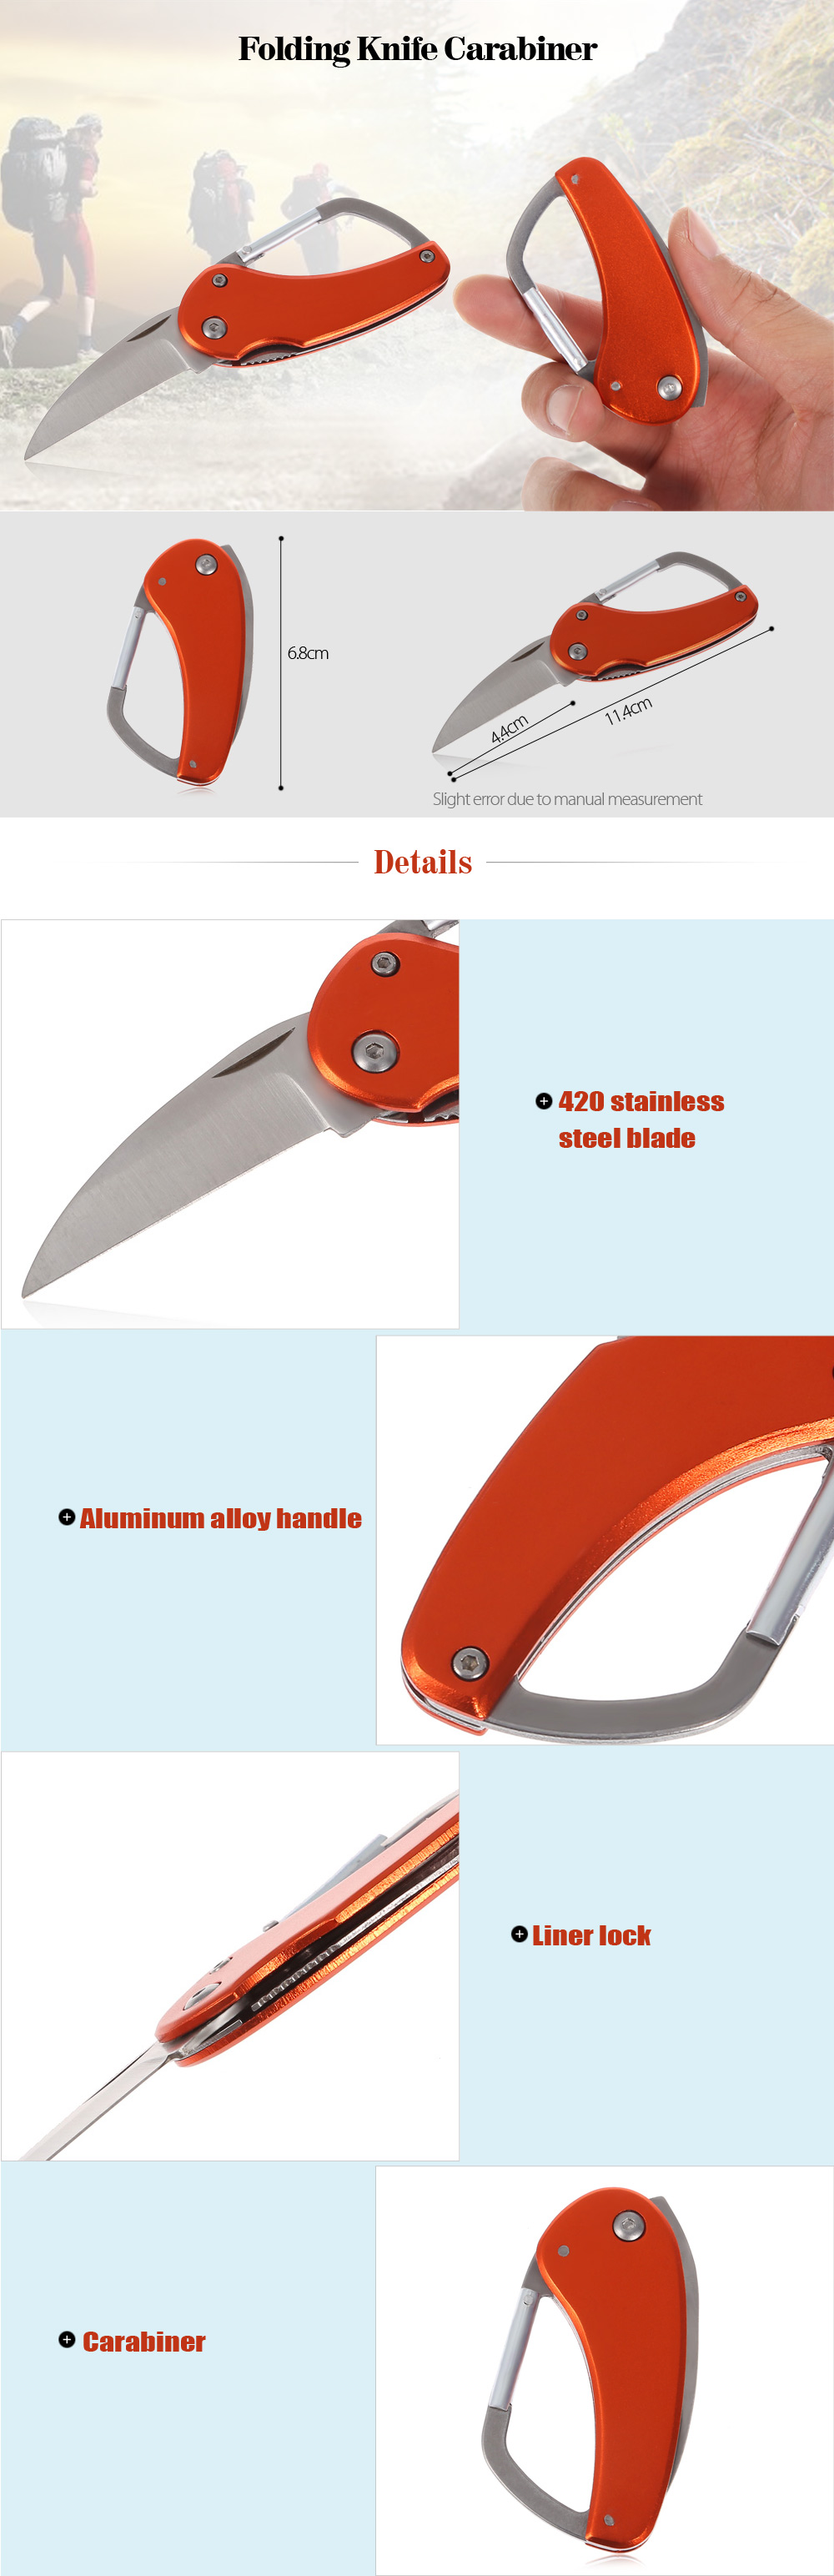 420 Stainless Steel Folding Knife Carabiner with Aluminum Alloy Handle